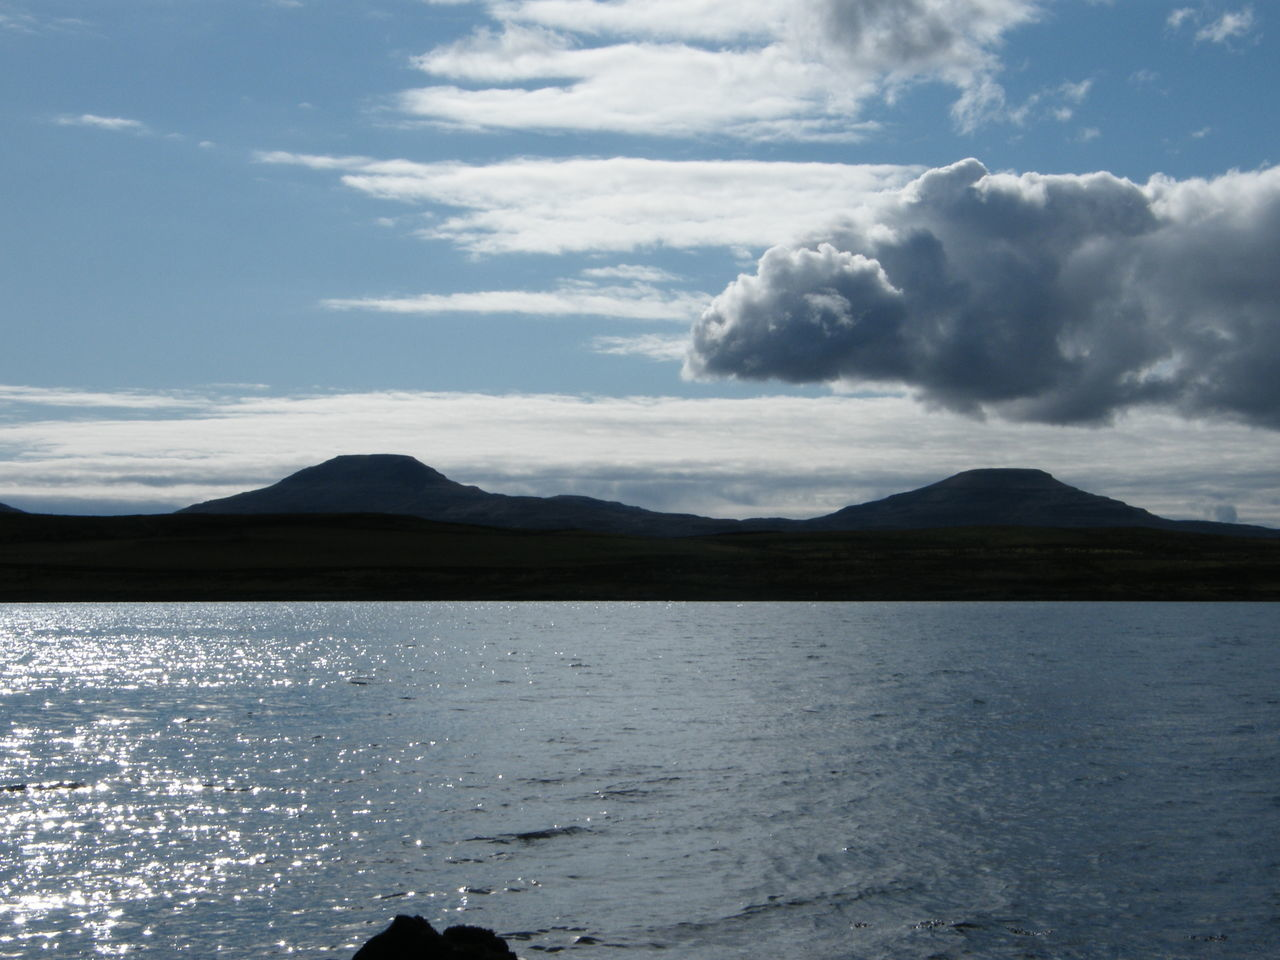 Beauty In Nature Cloud - Sky Clouds Day Isle Of Skye Landscape Landscape_photography Loch Caroy MacLeod's Tables Mountain Nature No People Outdoors Scotland Sea And Mountains Sea And Sky Sky Sun On The Sea Sun On The Water